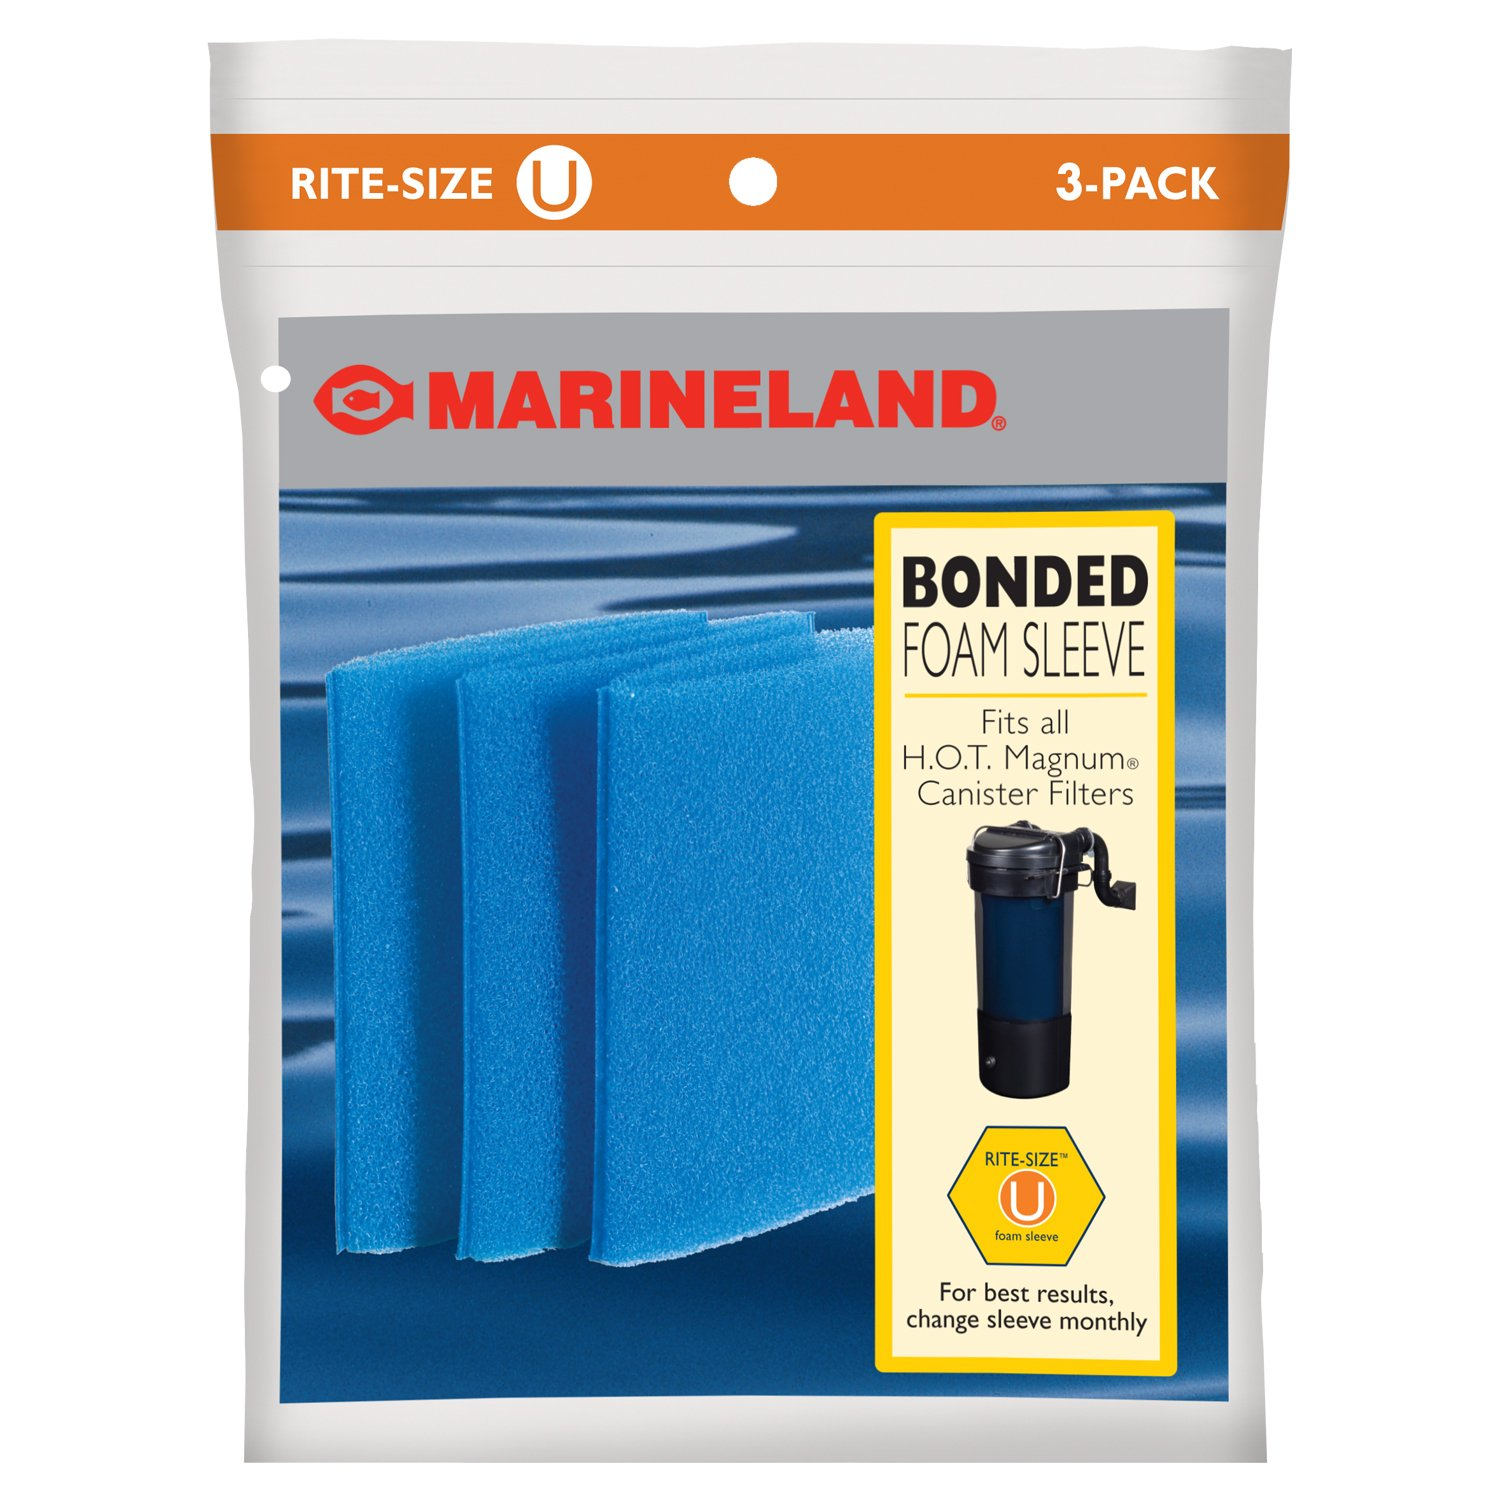 Marineland PA0115-3 Hot Magnum Foam Sleeve, Rite Size U, 3-Pack PA0115-03